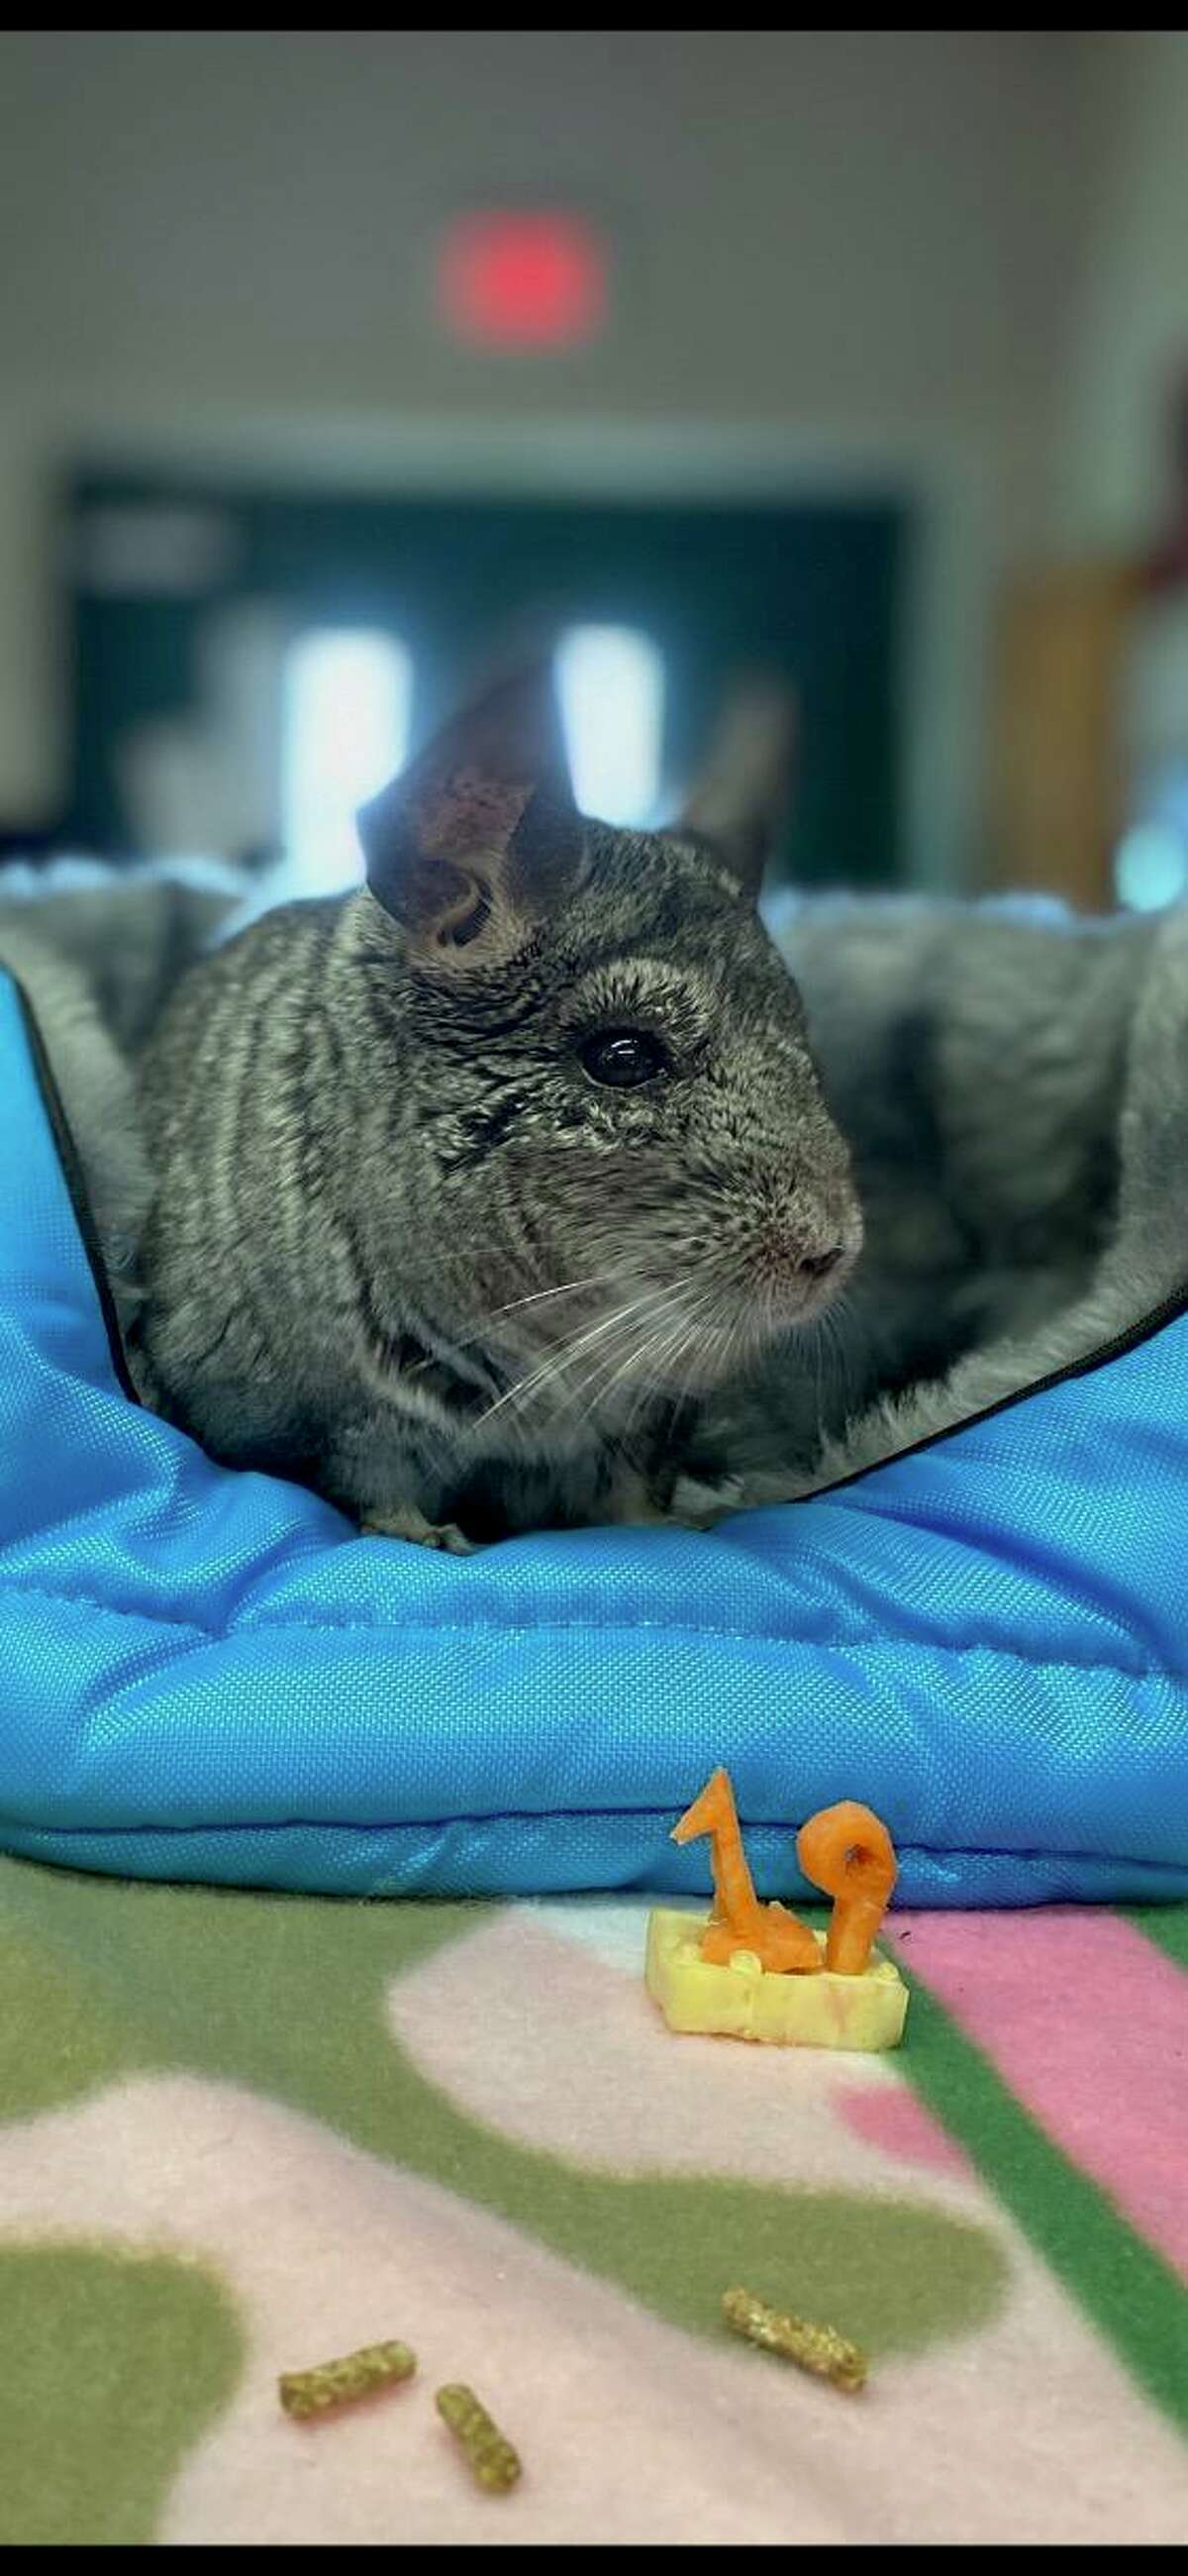 Wiggles on his 19th birthday. The chinchilla - elected as mayor of the Beardsley Zoo in Bridgeport, Conn., in November 2020 - died Sunday from